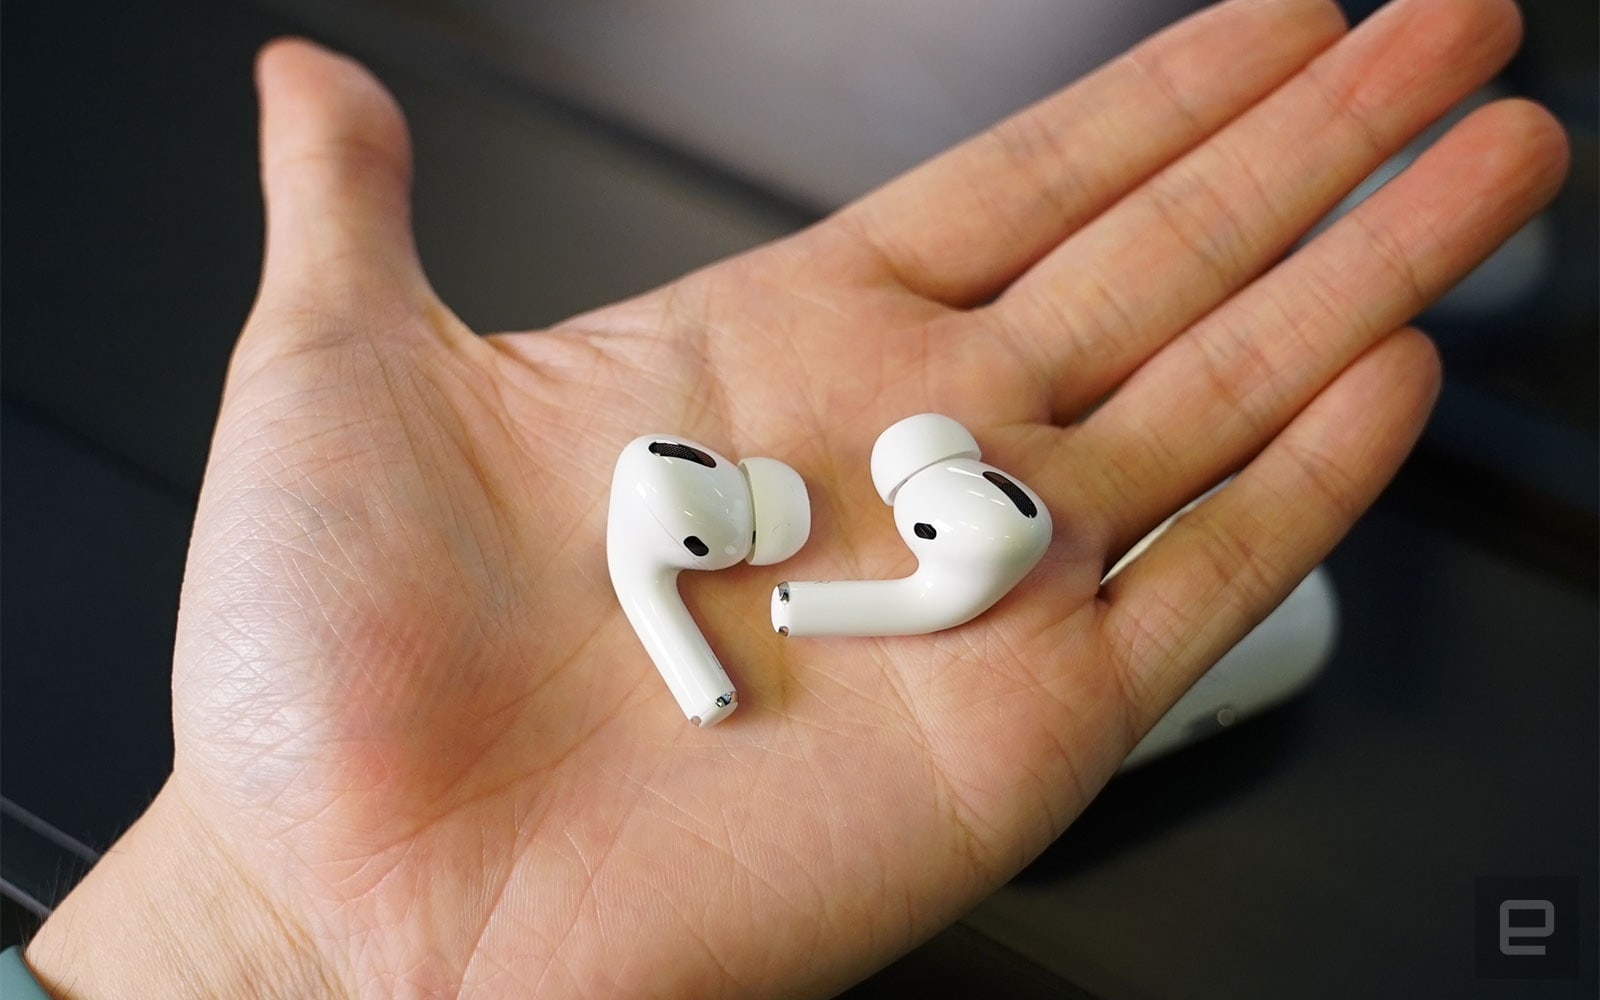 Apple AirPods Pro 评测